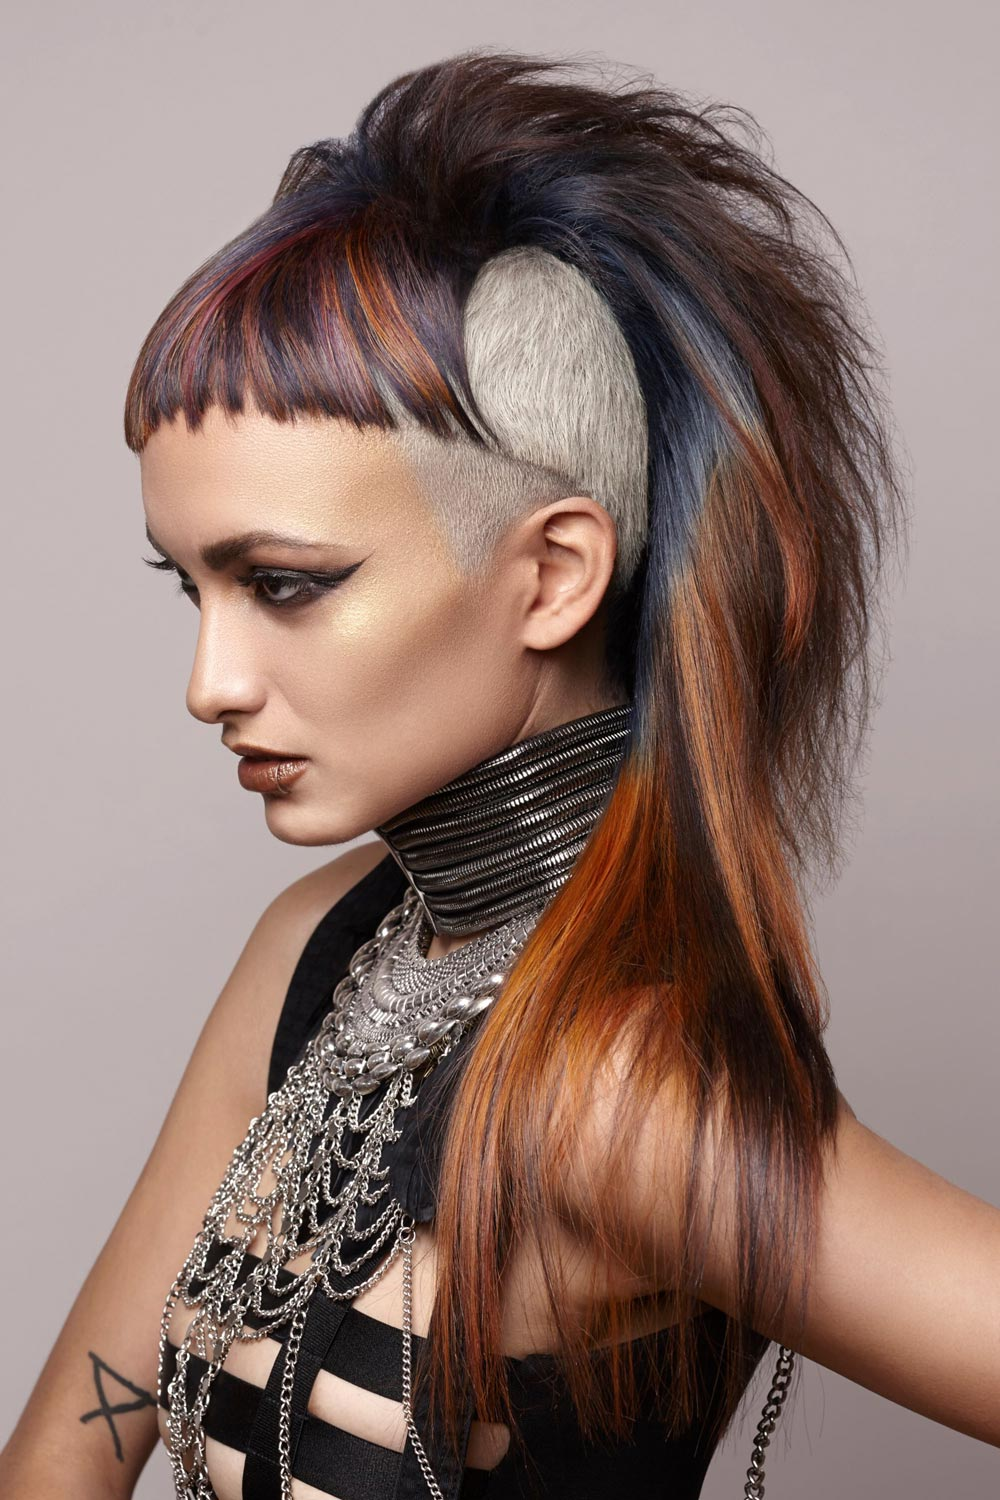 Harley Lobasso, Hair by Scott & Company, Delray Beach, FL - Goldwell Color Zoom 2015: Creative Semi-Finalists